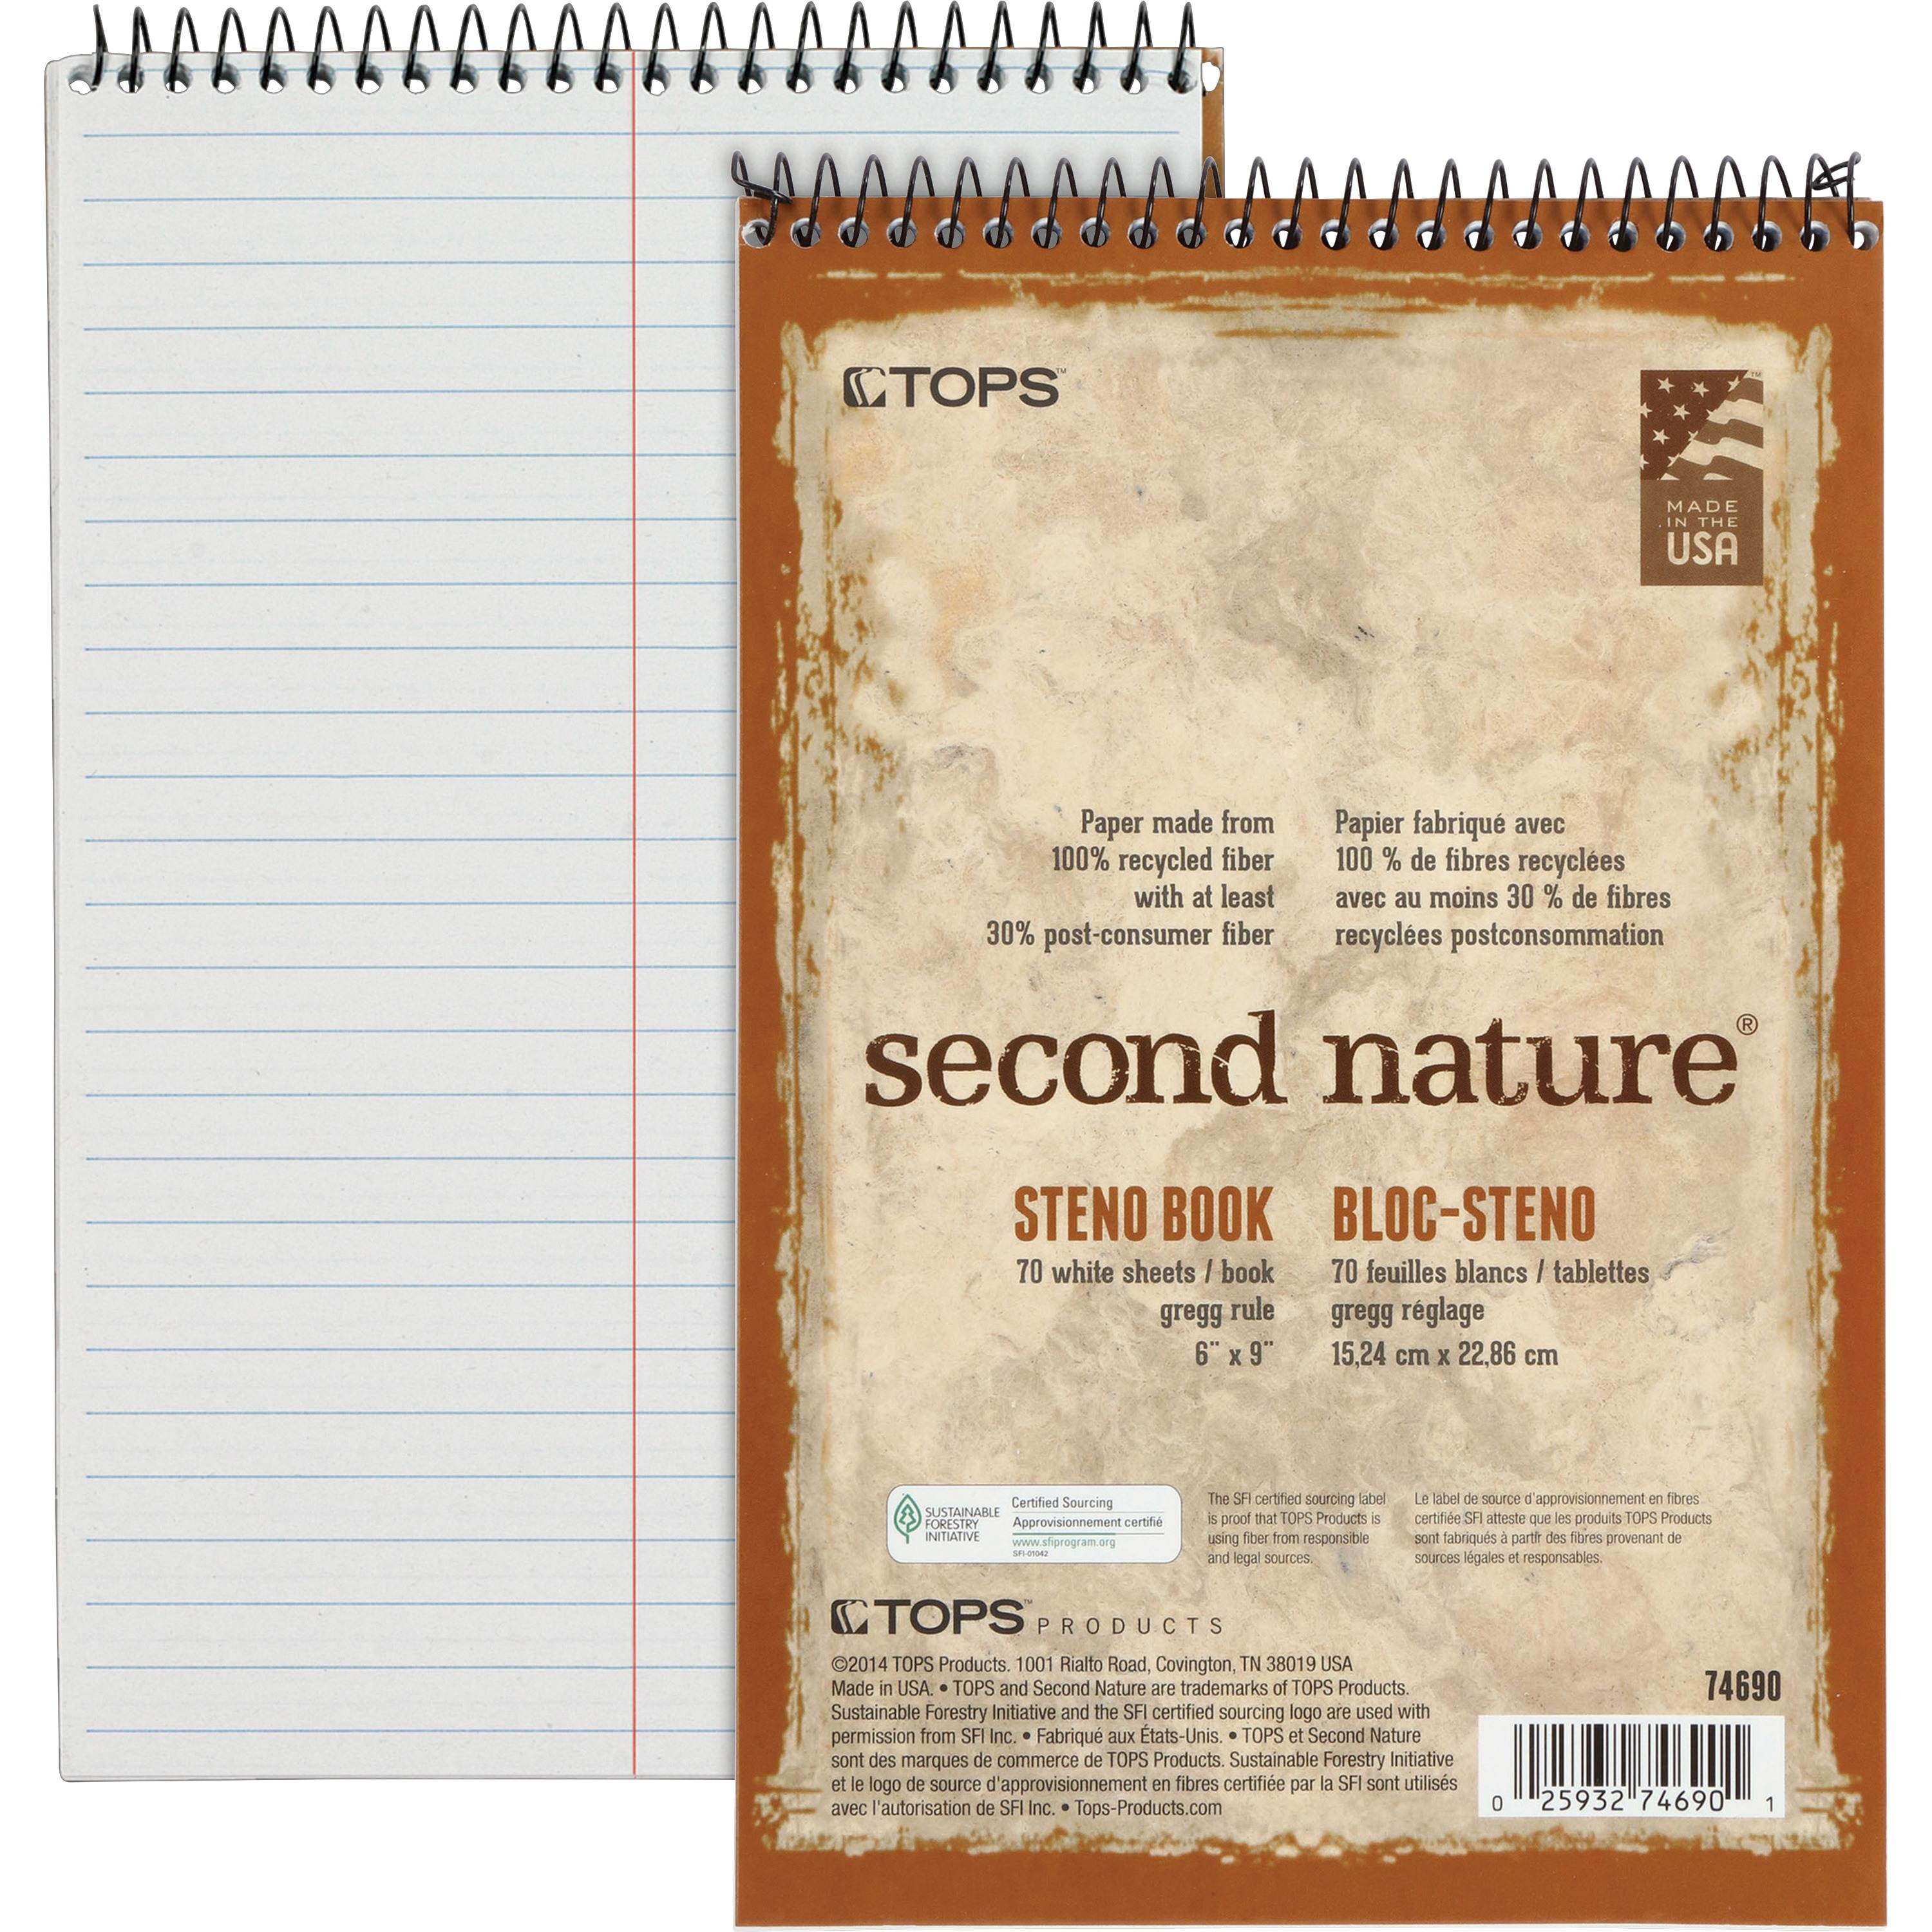 TOPS, TOP74690, Second Nature Spiral Steno Notebook